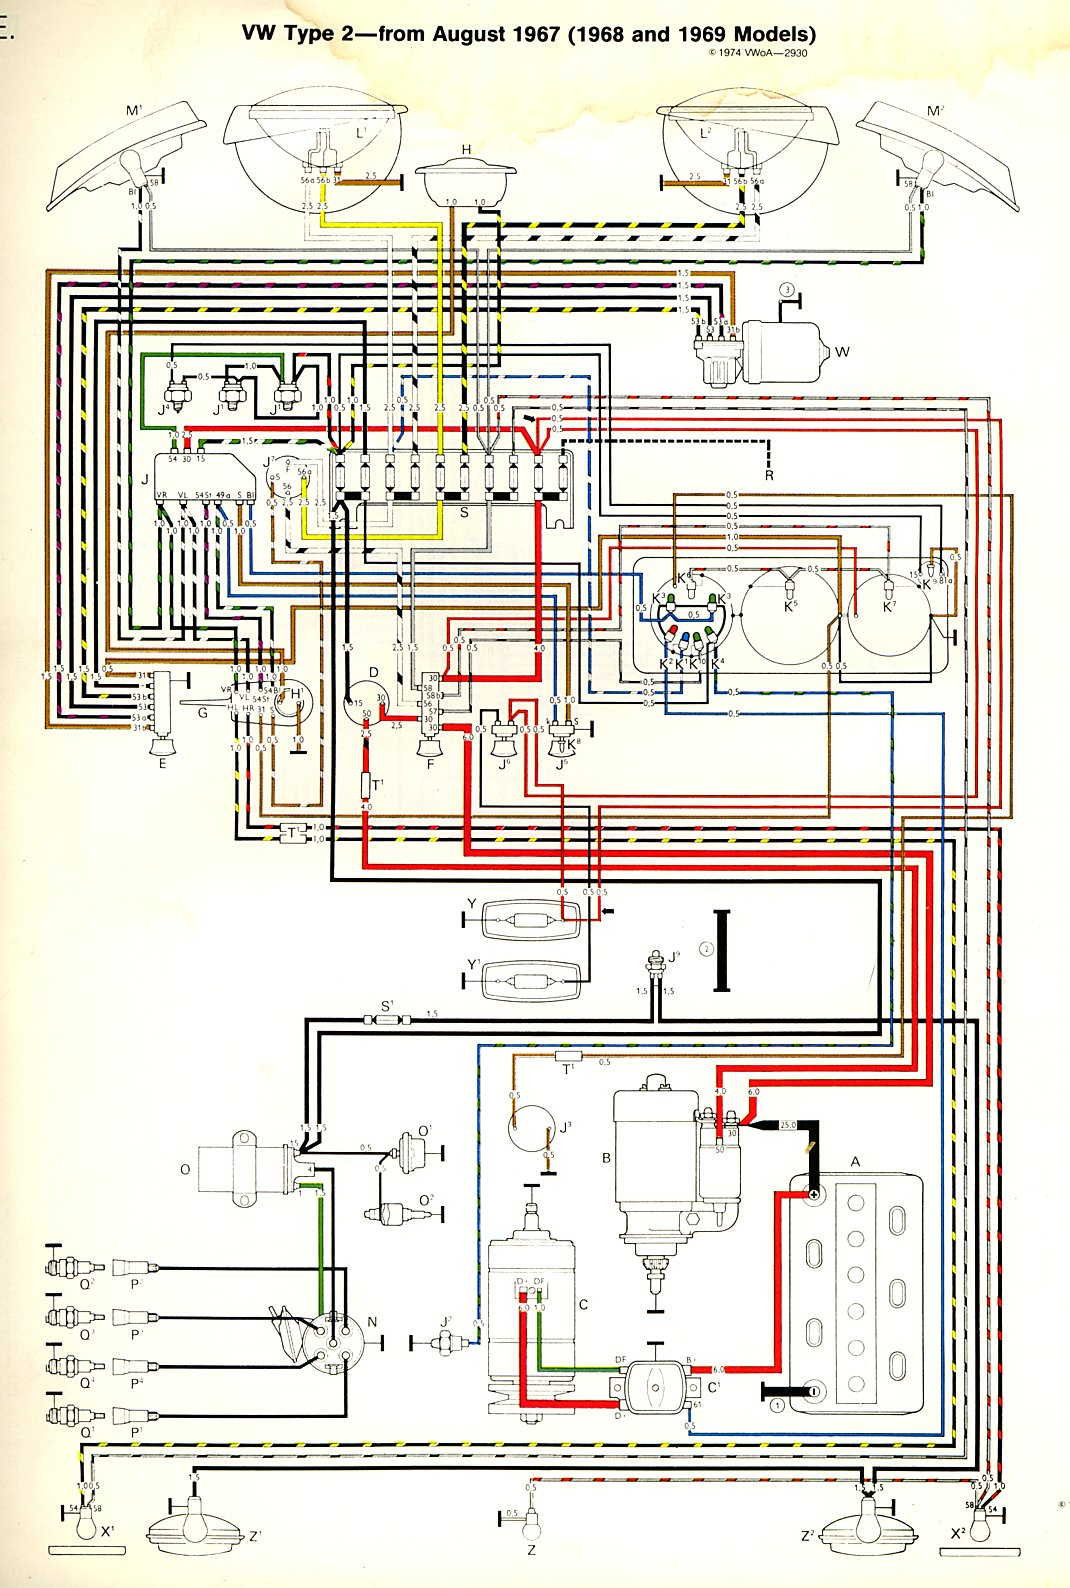 baybus_6869a 1968 69 bus wiring diagram thegoldenbug com 1971 vw bus wiring diagram at mr168.co